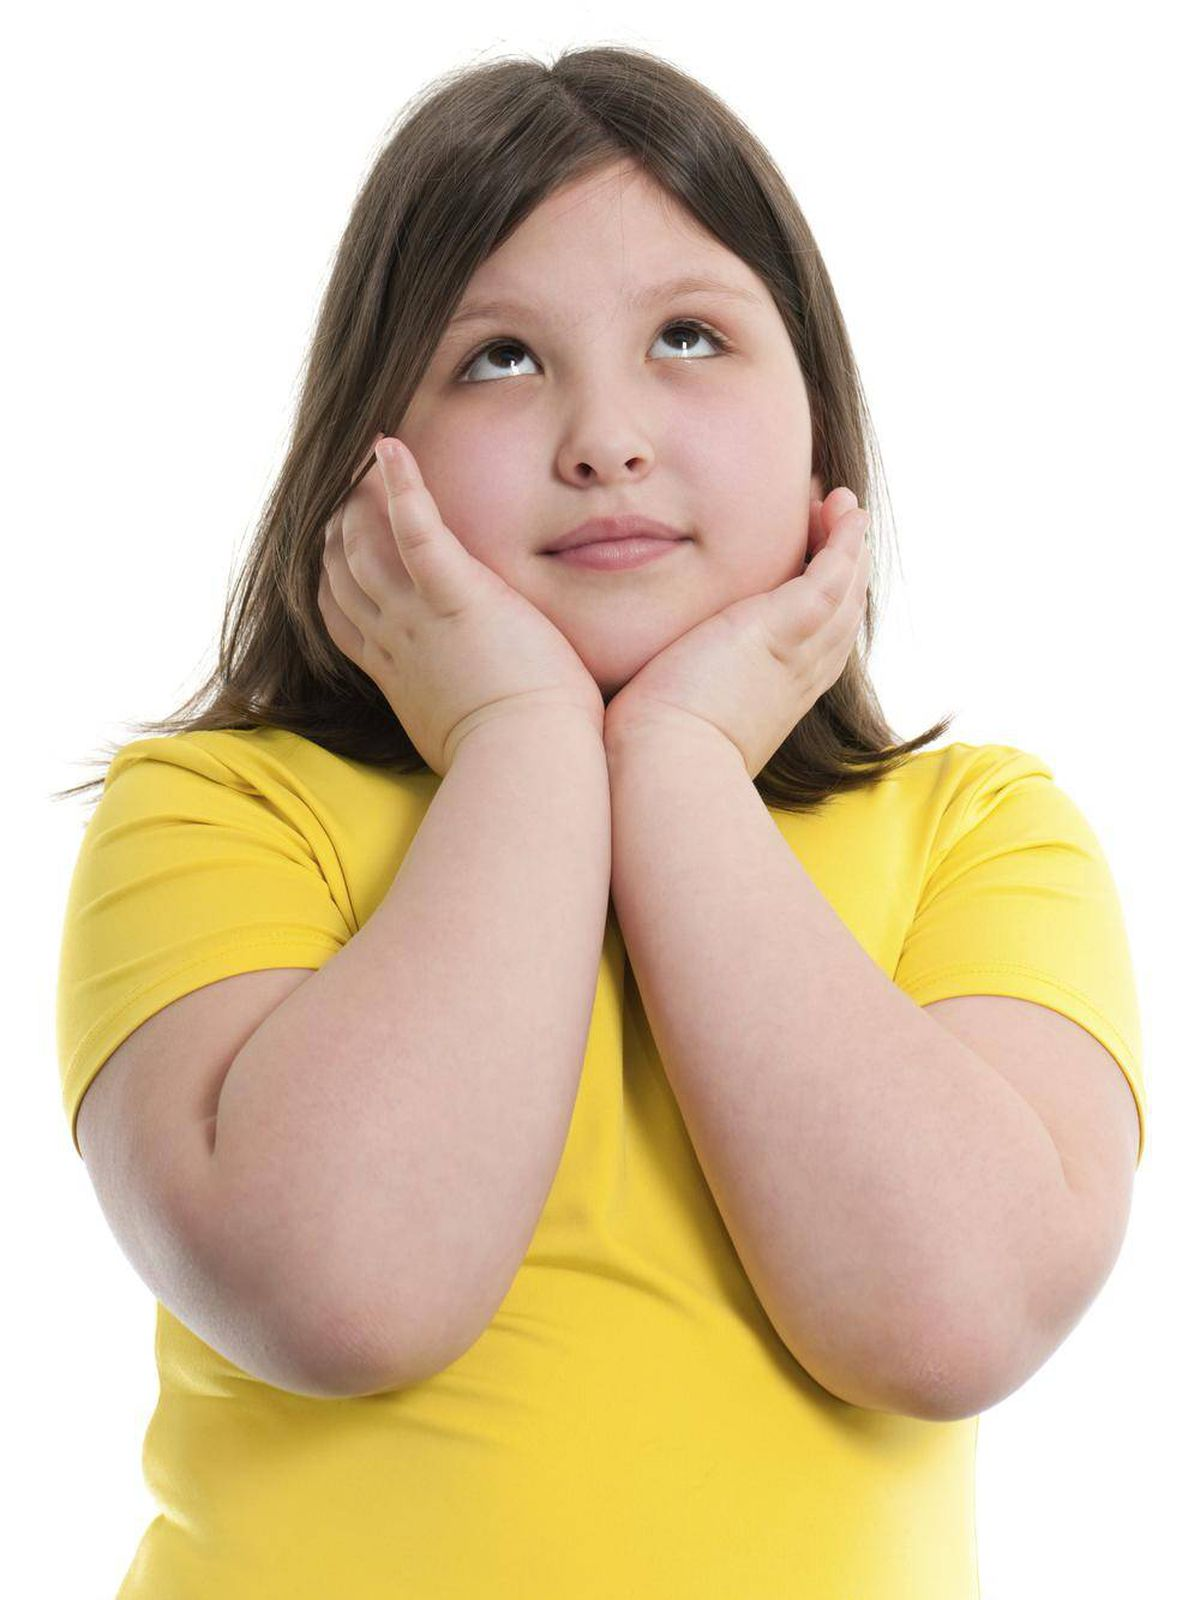 Obese young girls, free nude reality tv downloads